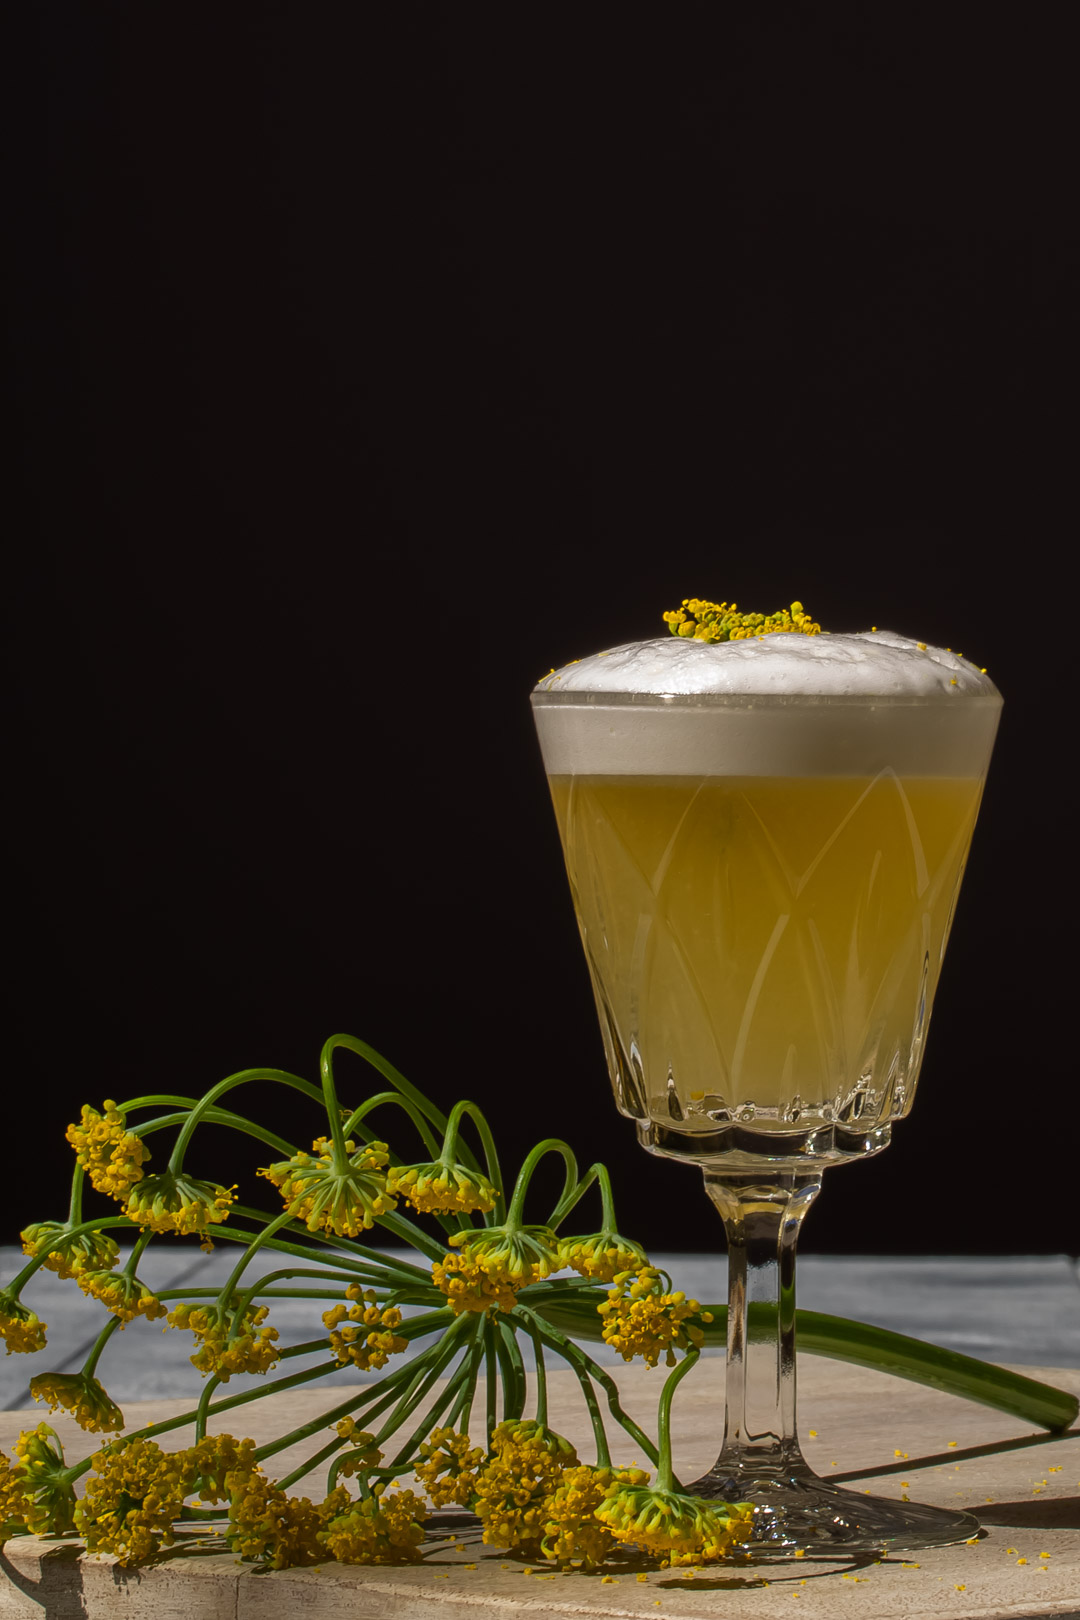 fennel flower silver sour to right with fennel umbrel and fennel flower garnish